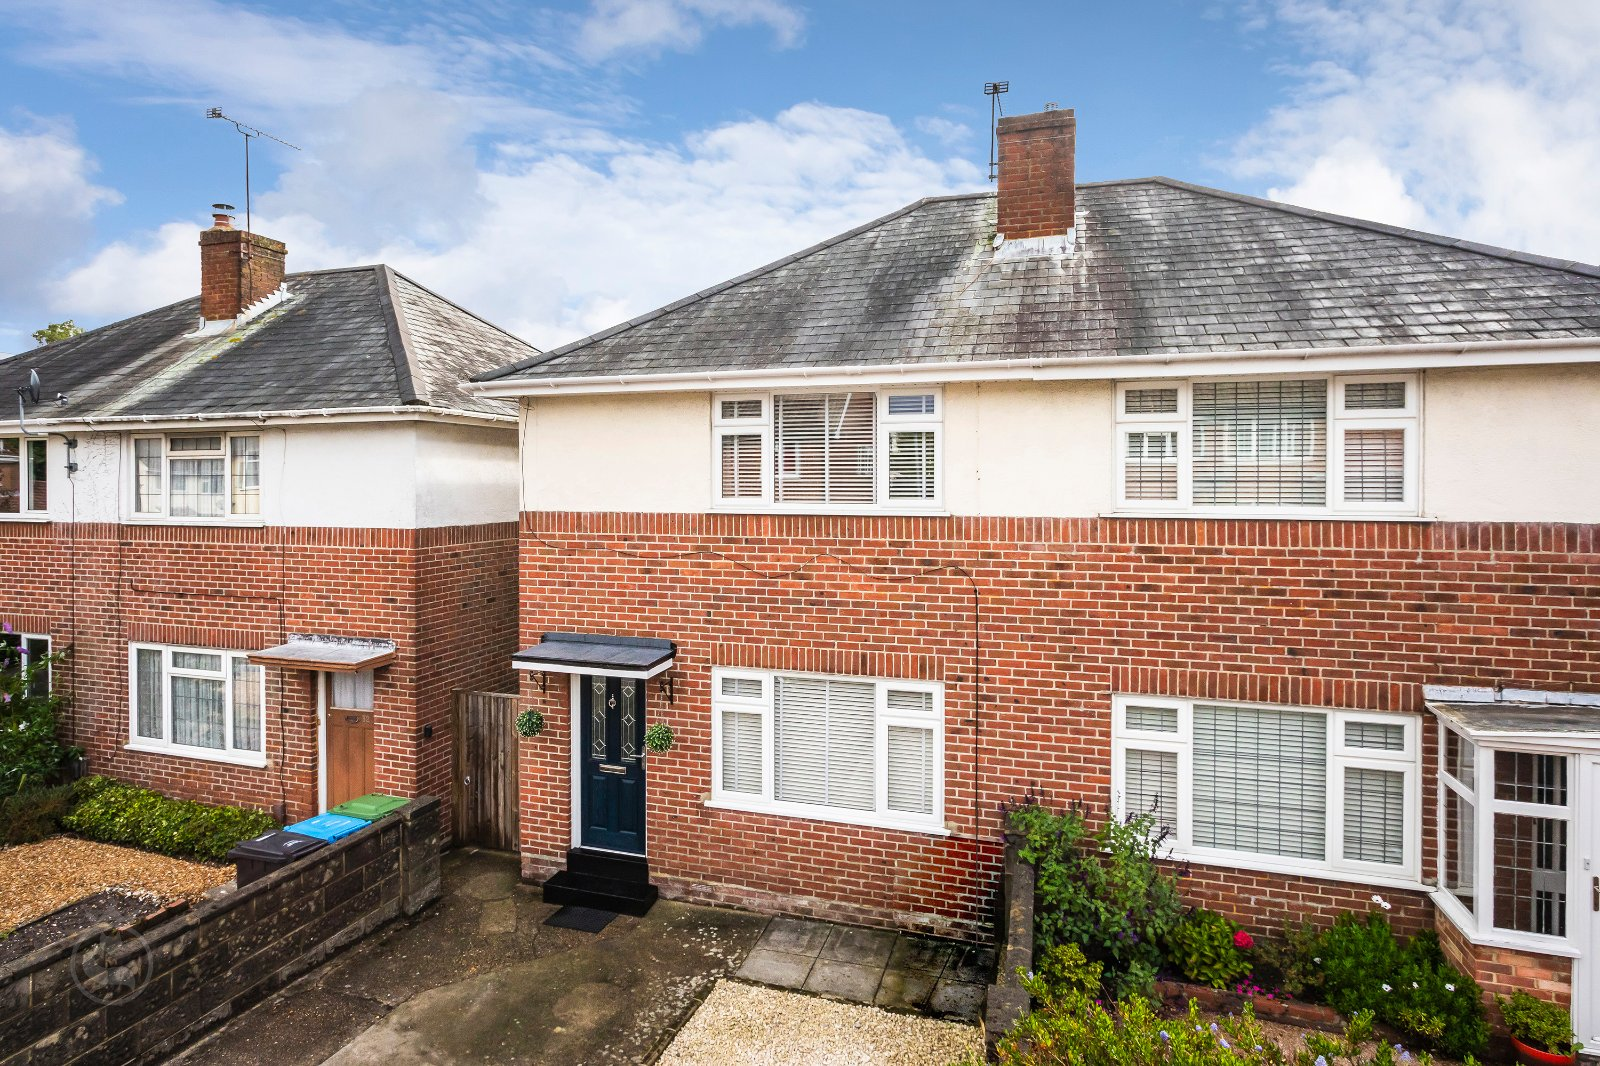 3 bed house for sale in Parkstone, BH12